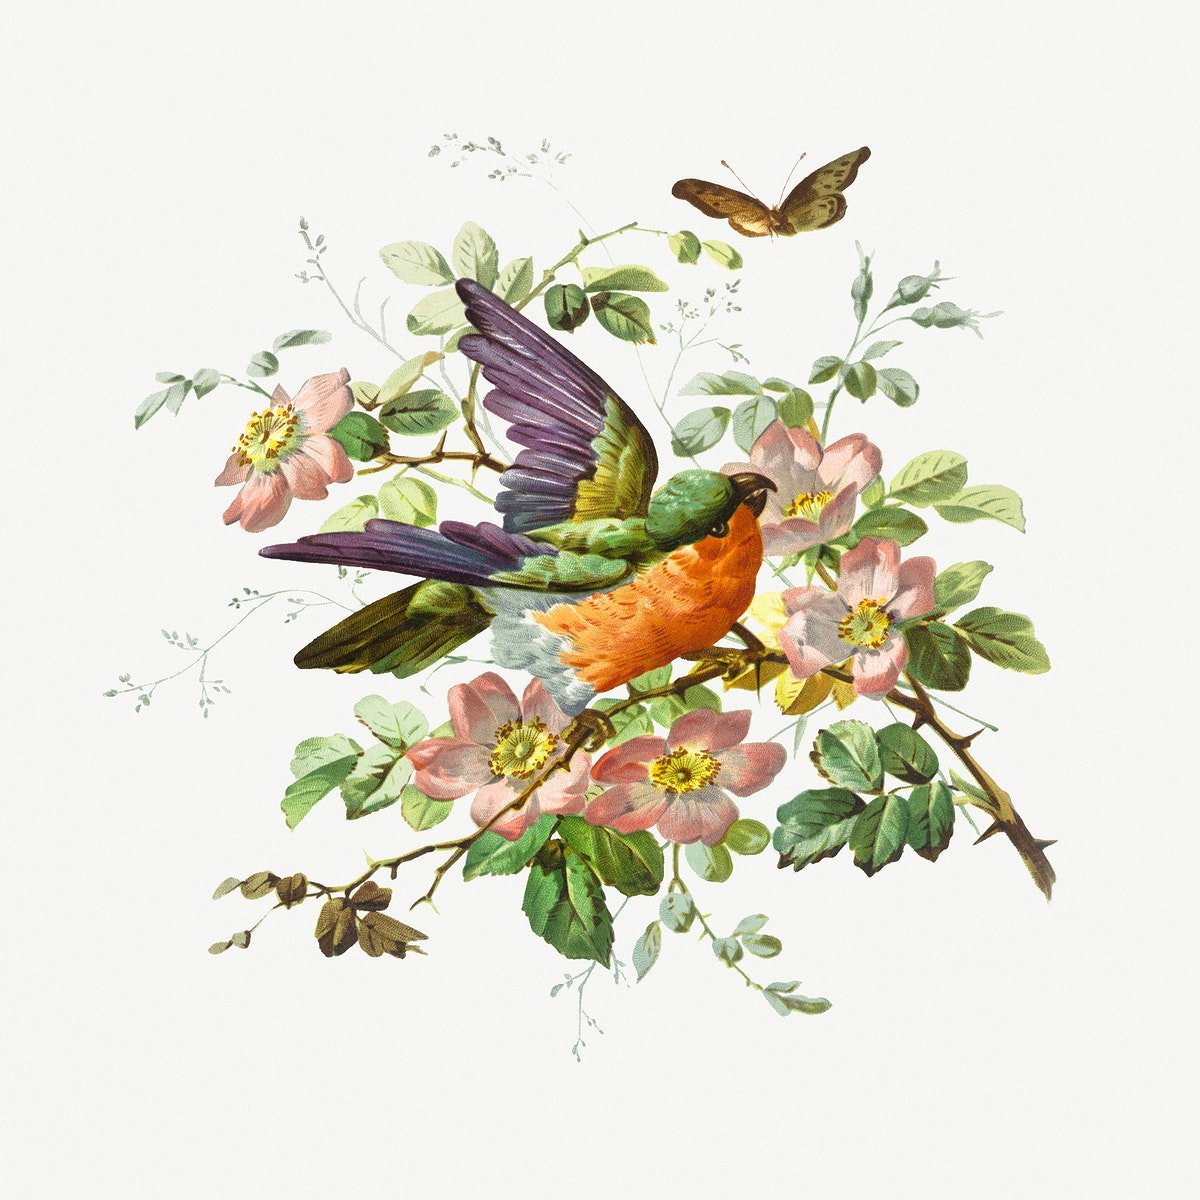 Birthday card illustration of decorative birds, flowers, and butterflies